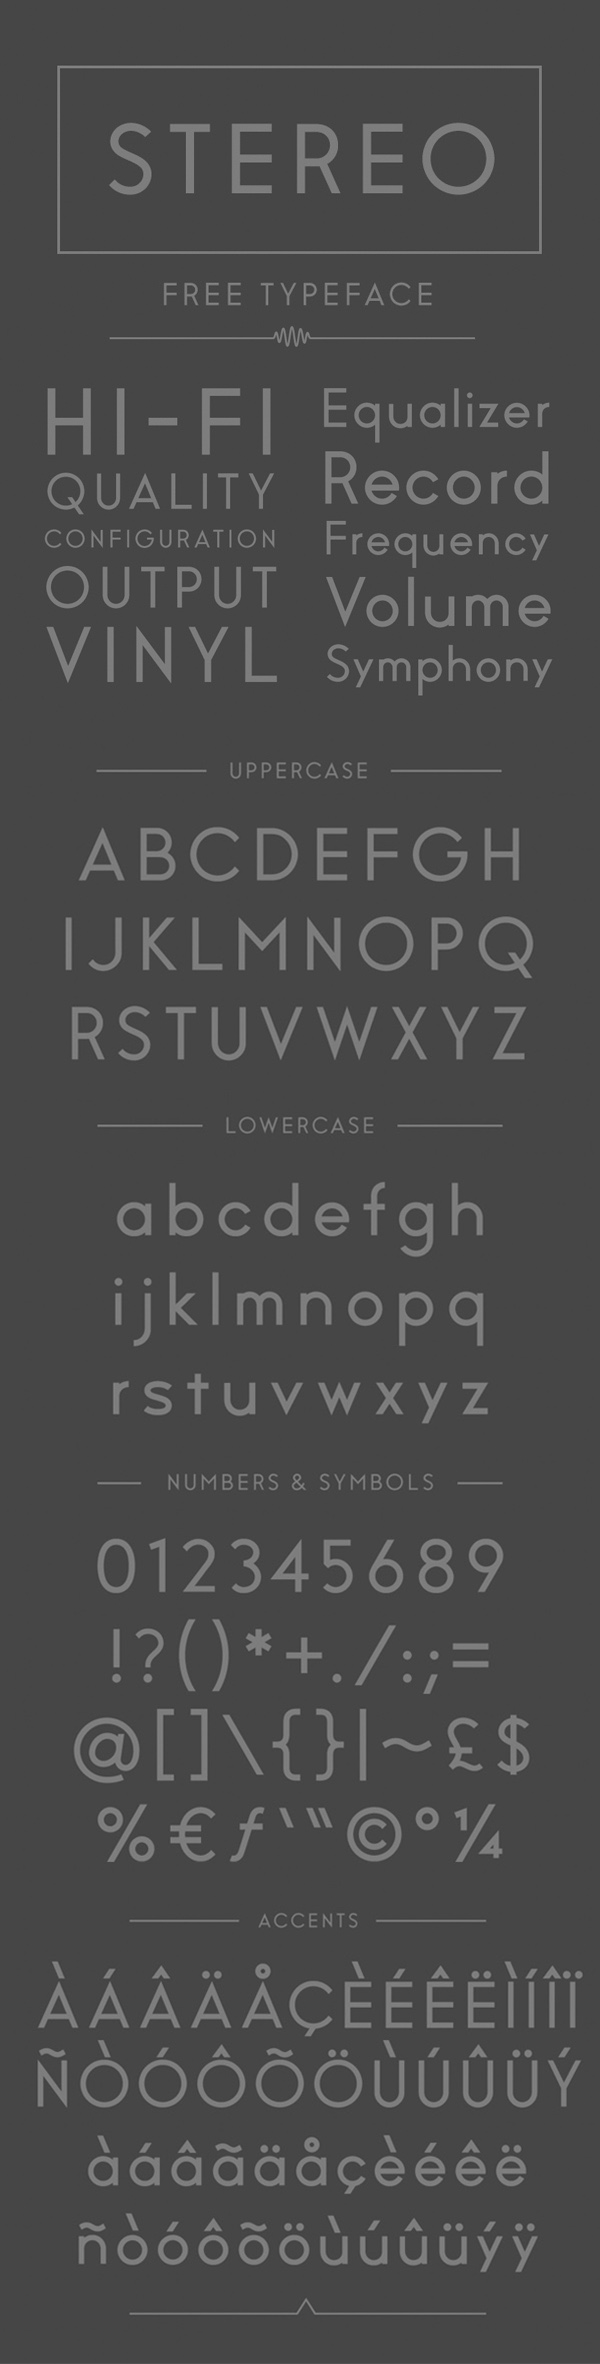 09 Stereo Free Font